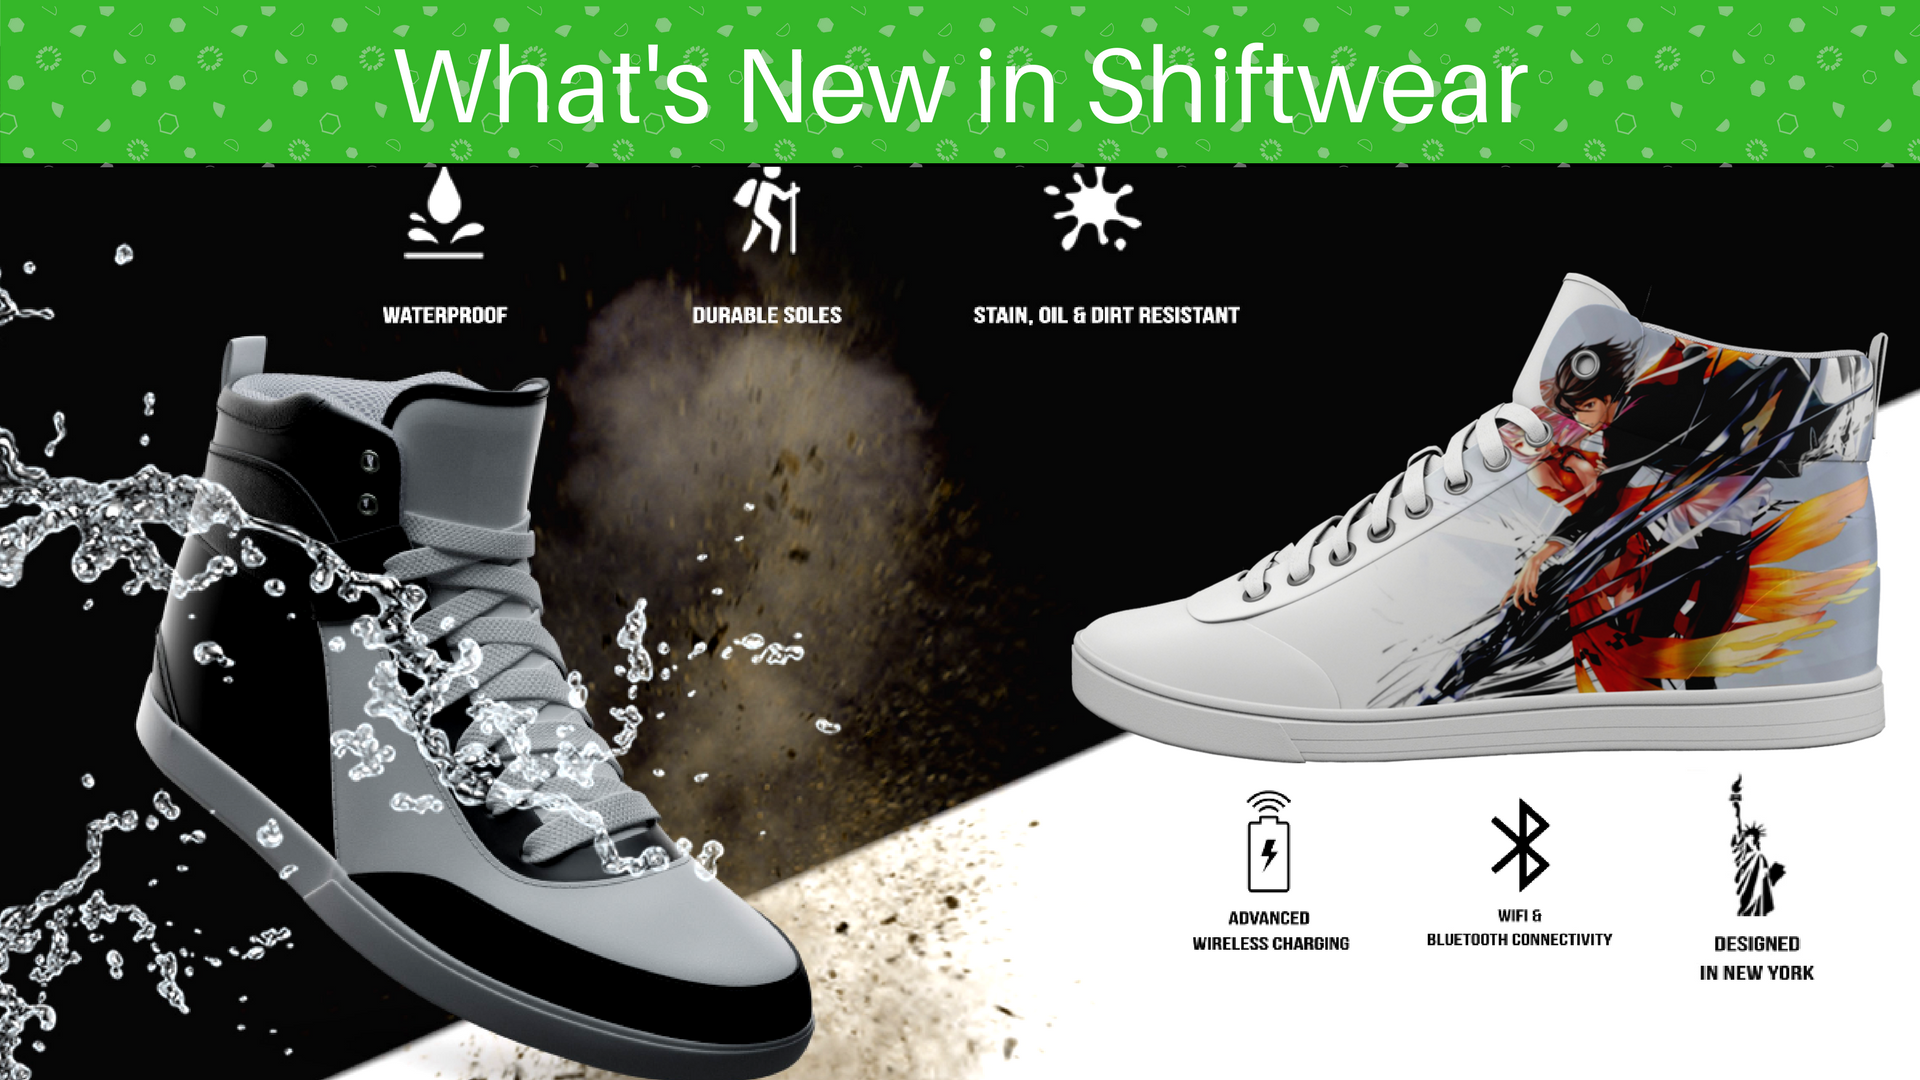 What's New - Shiftwear